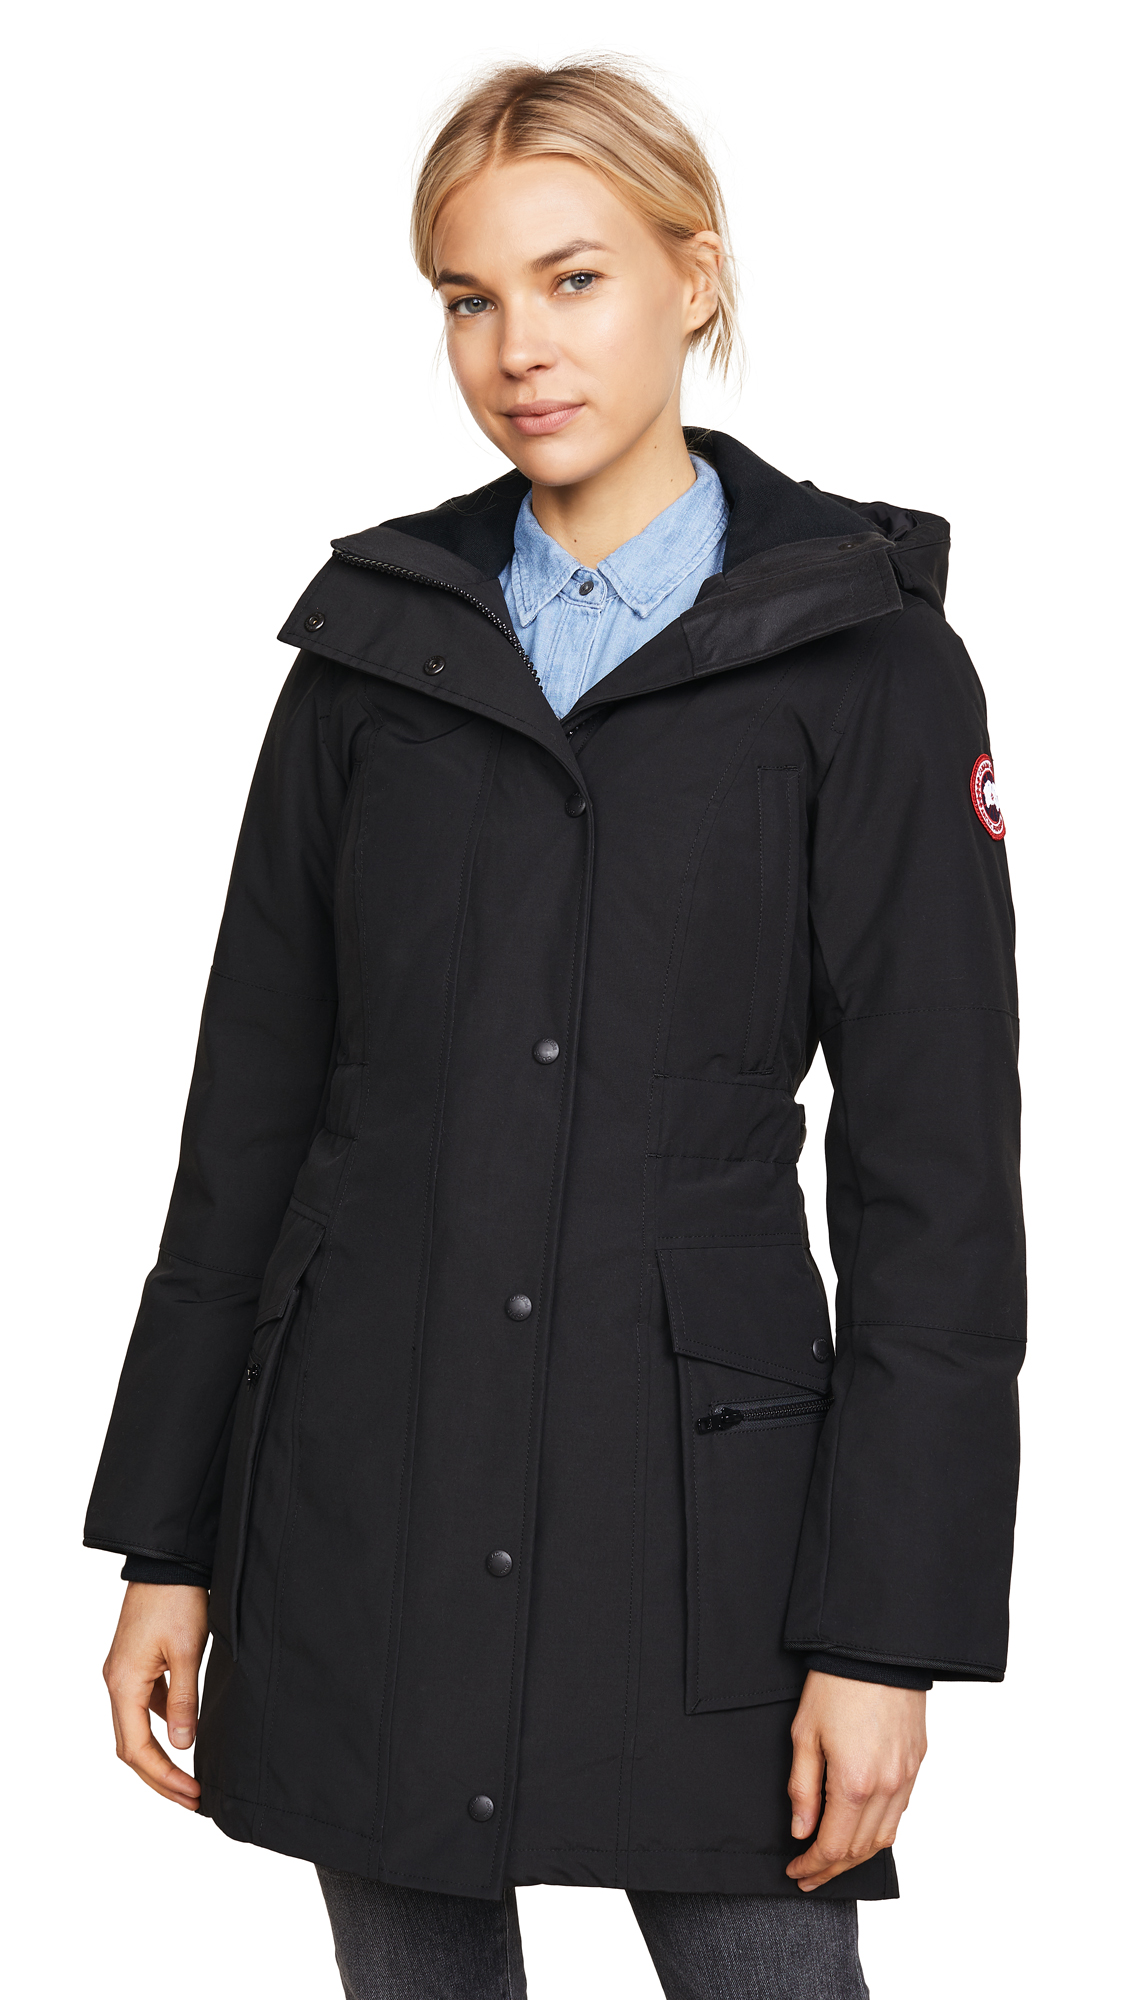 Buy Canada Goose Kinley Parka online beautiful Canada Goose Jackets, Coats, Down Jackets